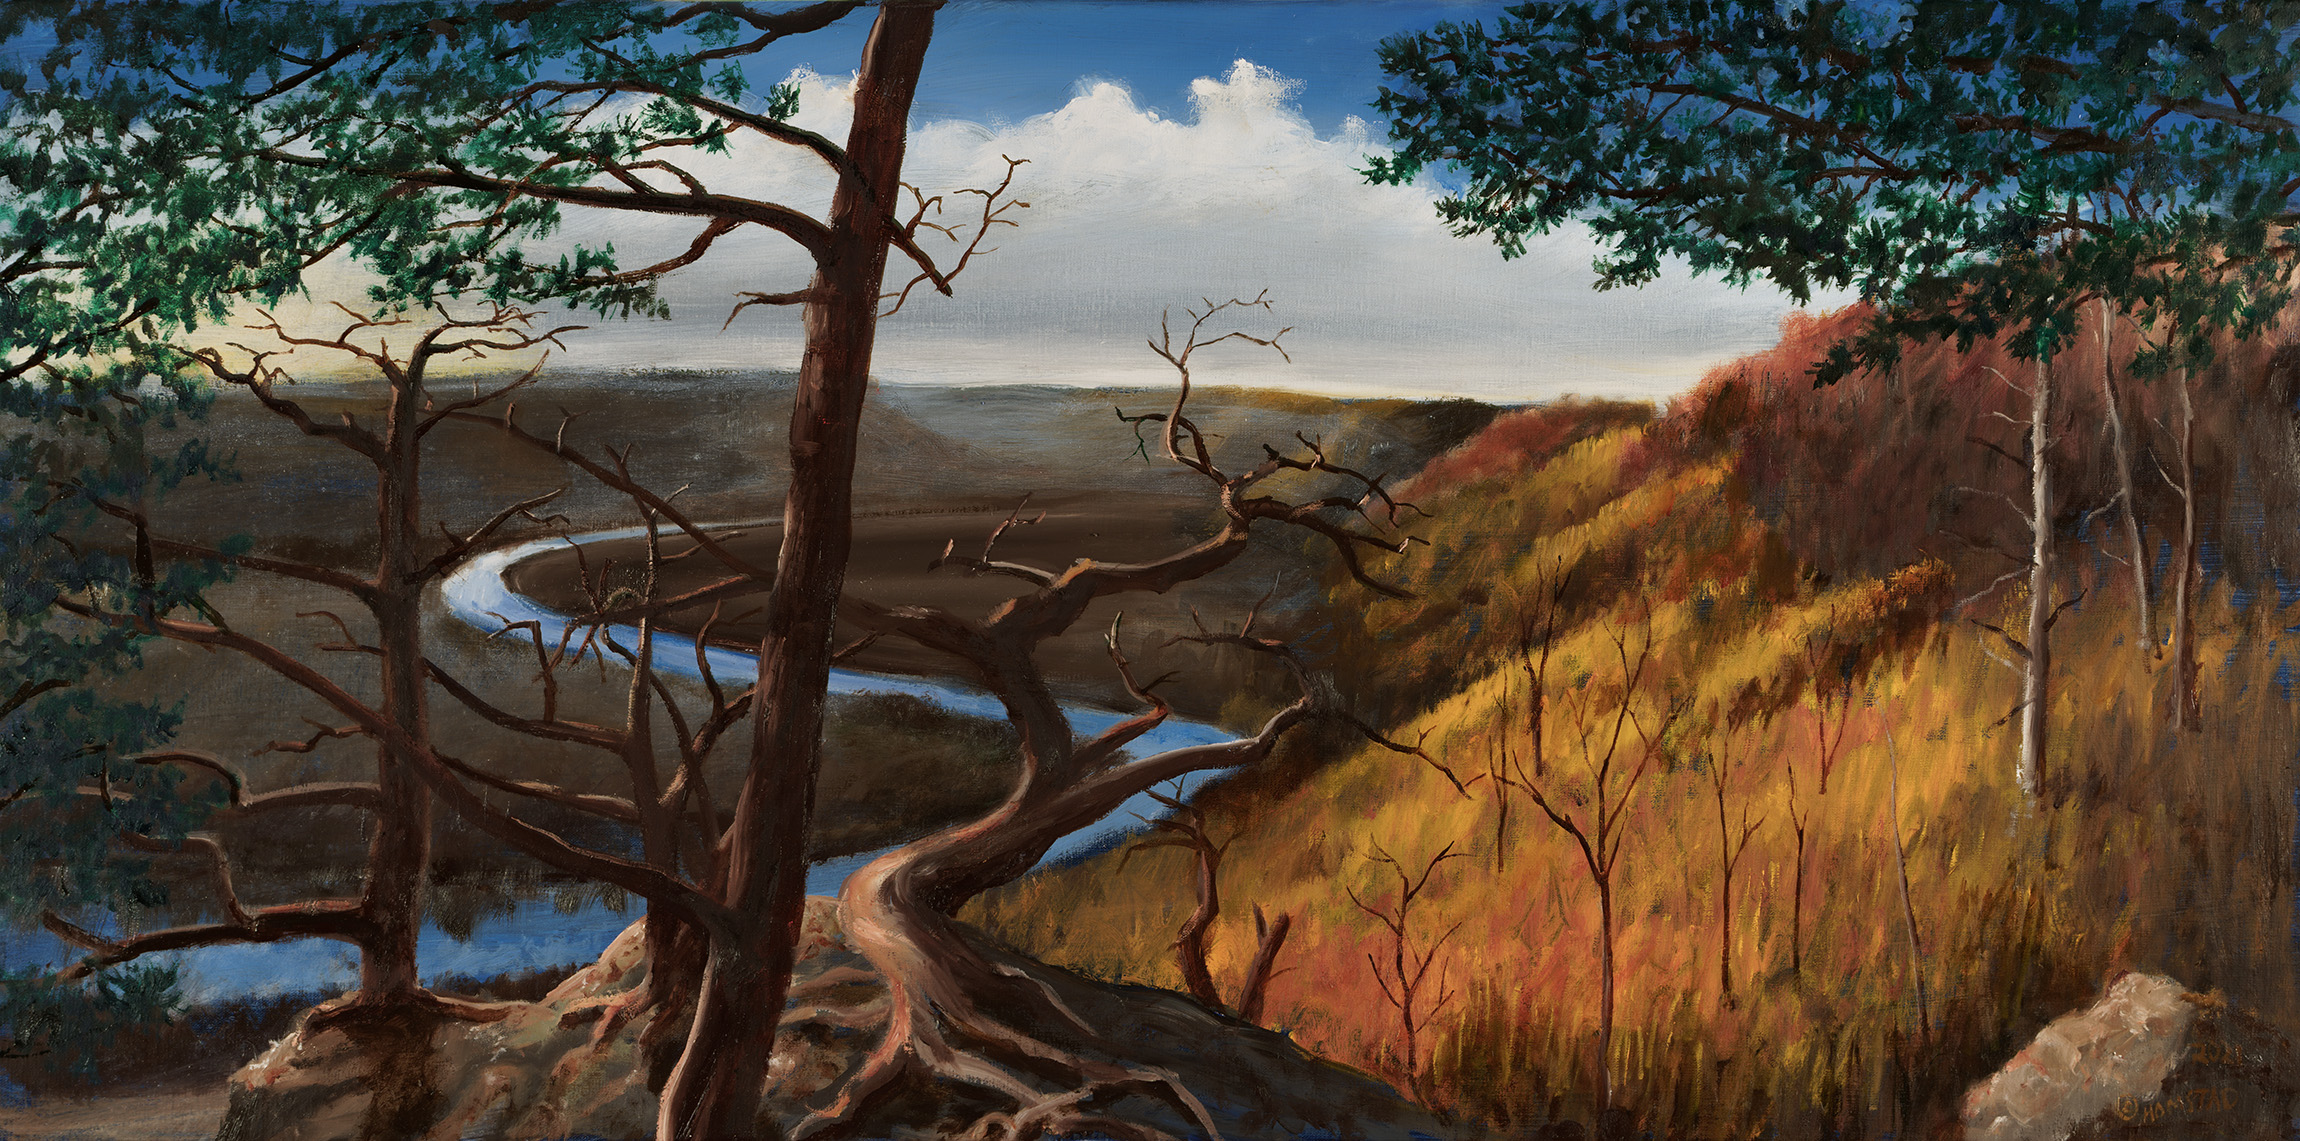 a painting of the Decorah Landscape by Carl Homstad